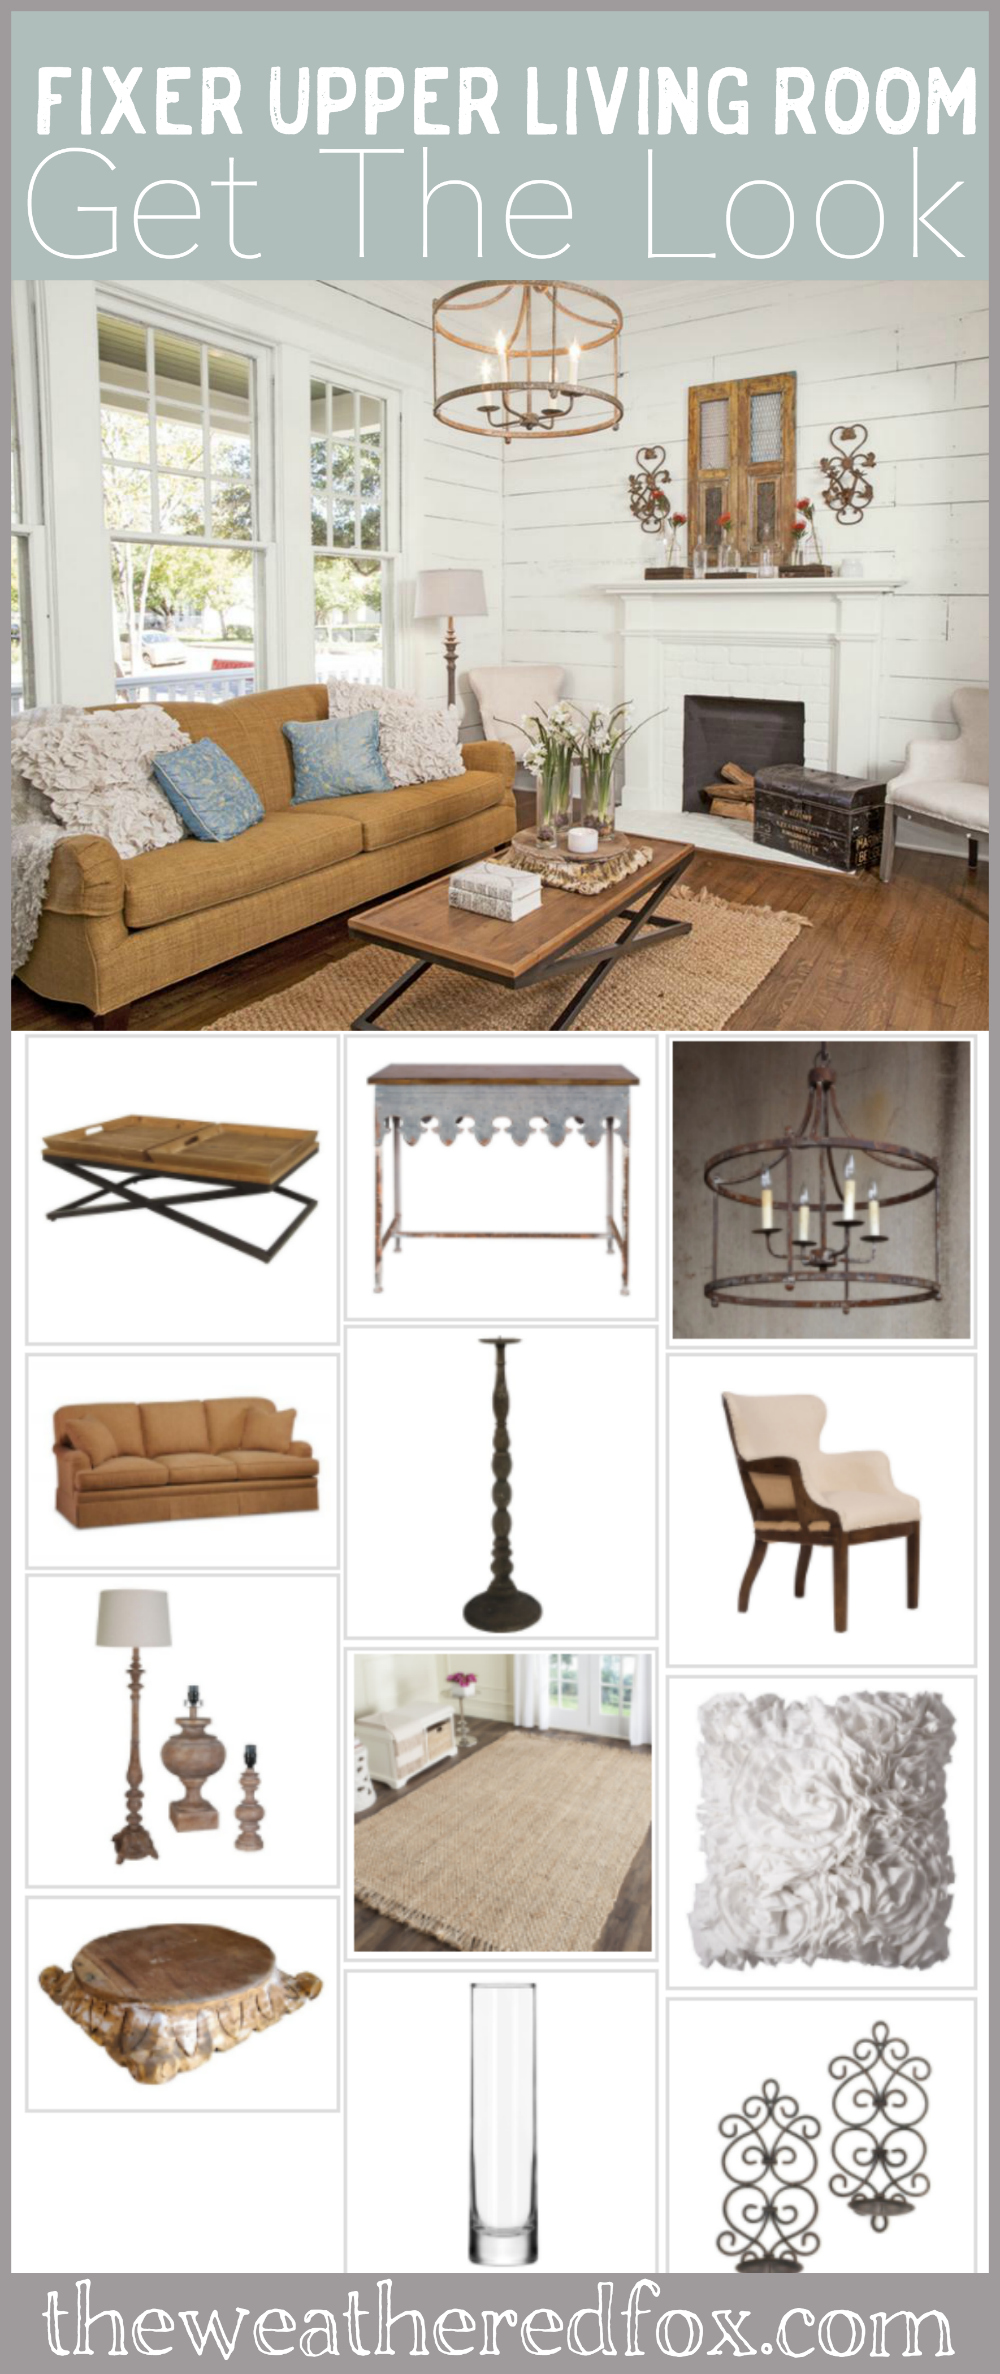 Fixer Upper Living Room Ideas. Get the fixer upper style with this ultimate shopping guide. Shop where Joanna shops!